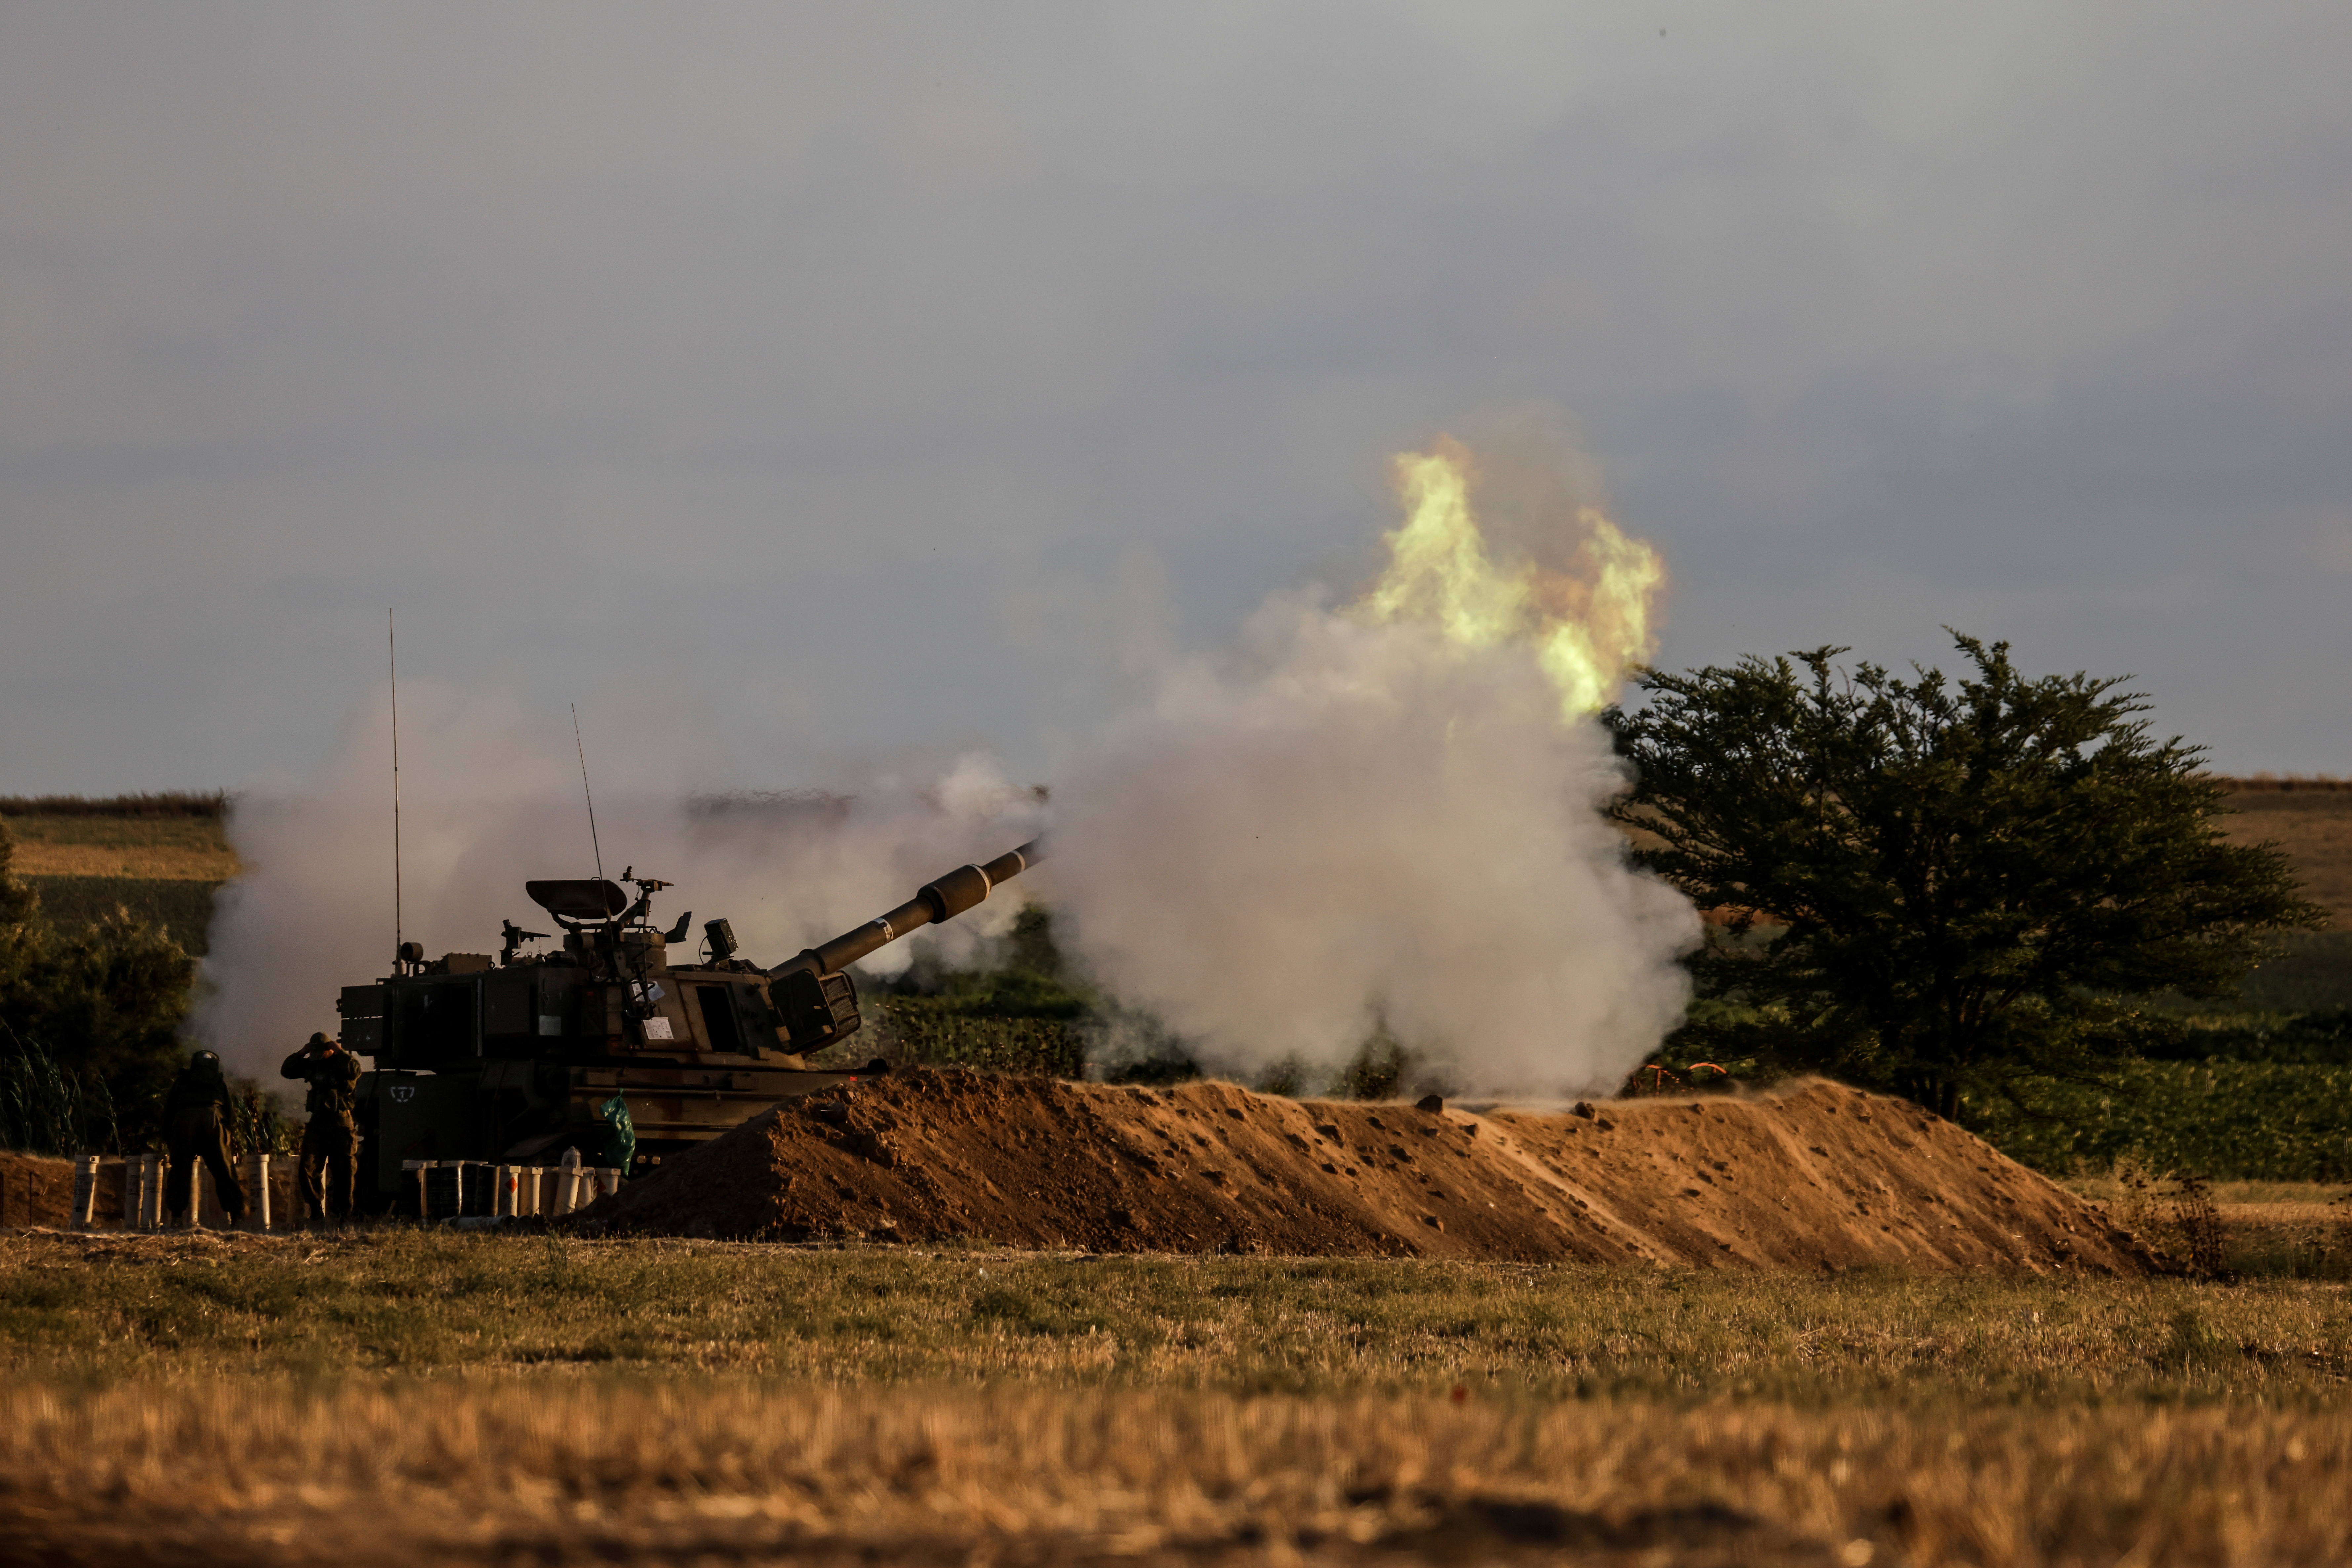 Israeli soldiers stand by an artillery unit as it fires near the border between Israel and the Gaza strip, on the Israeli side May 17, 2021. REUTERS/Amir Cohen